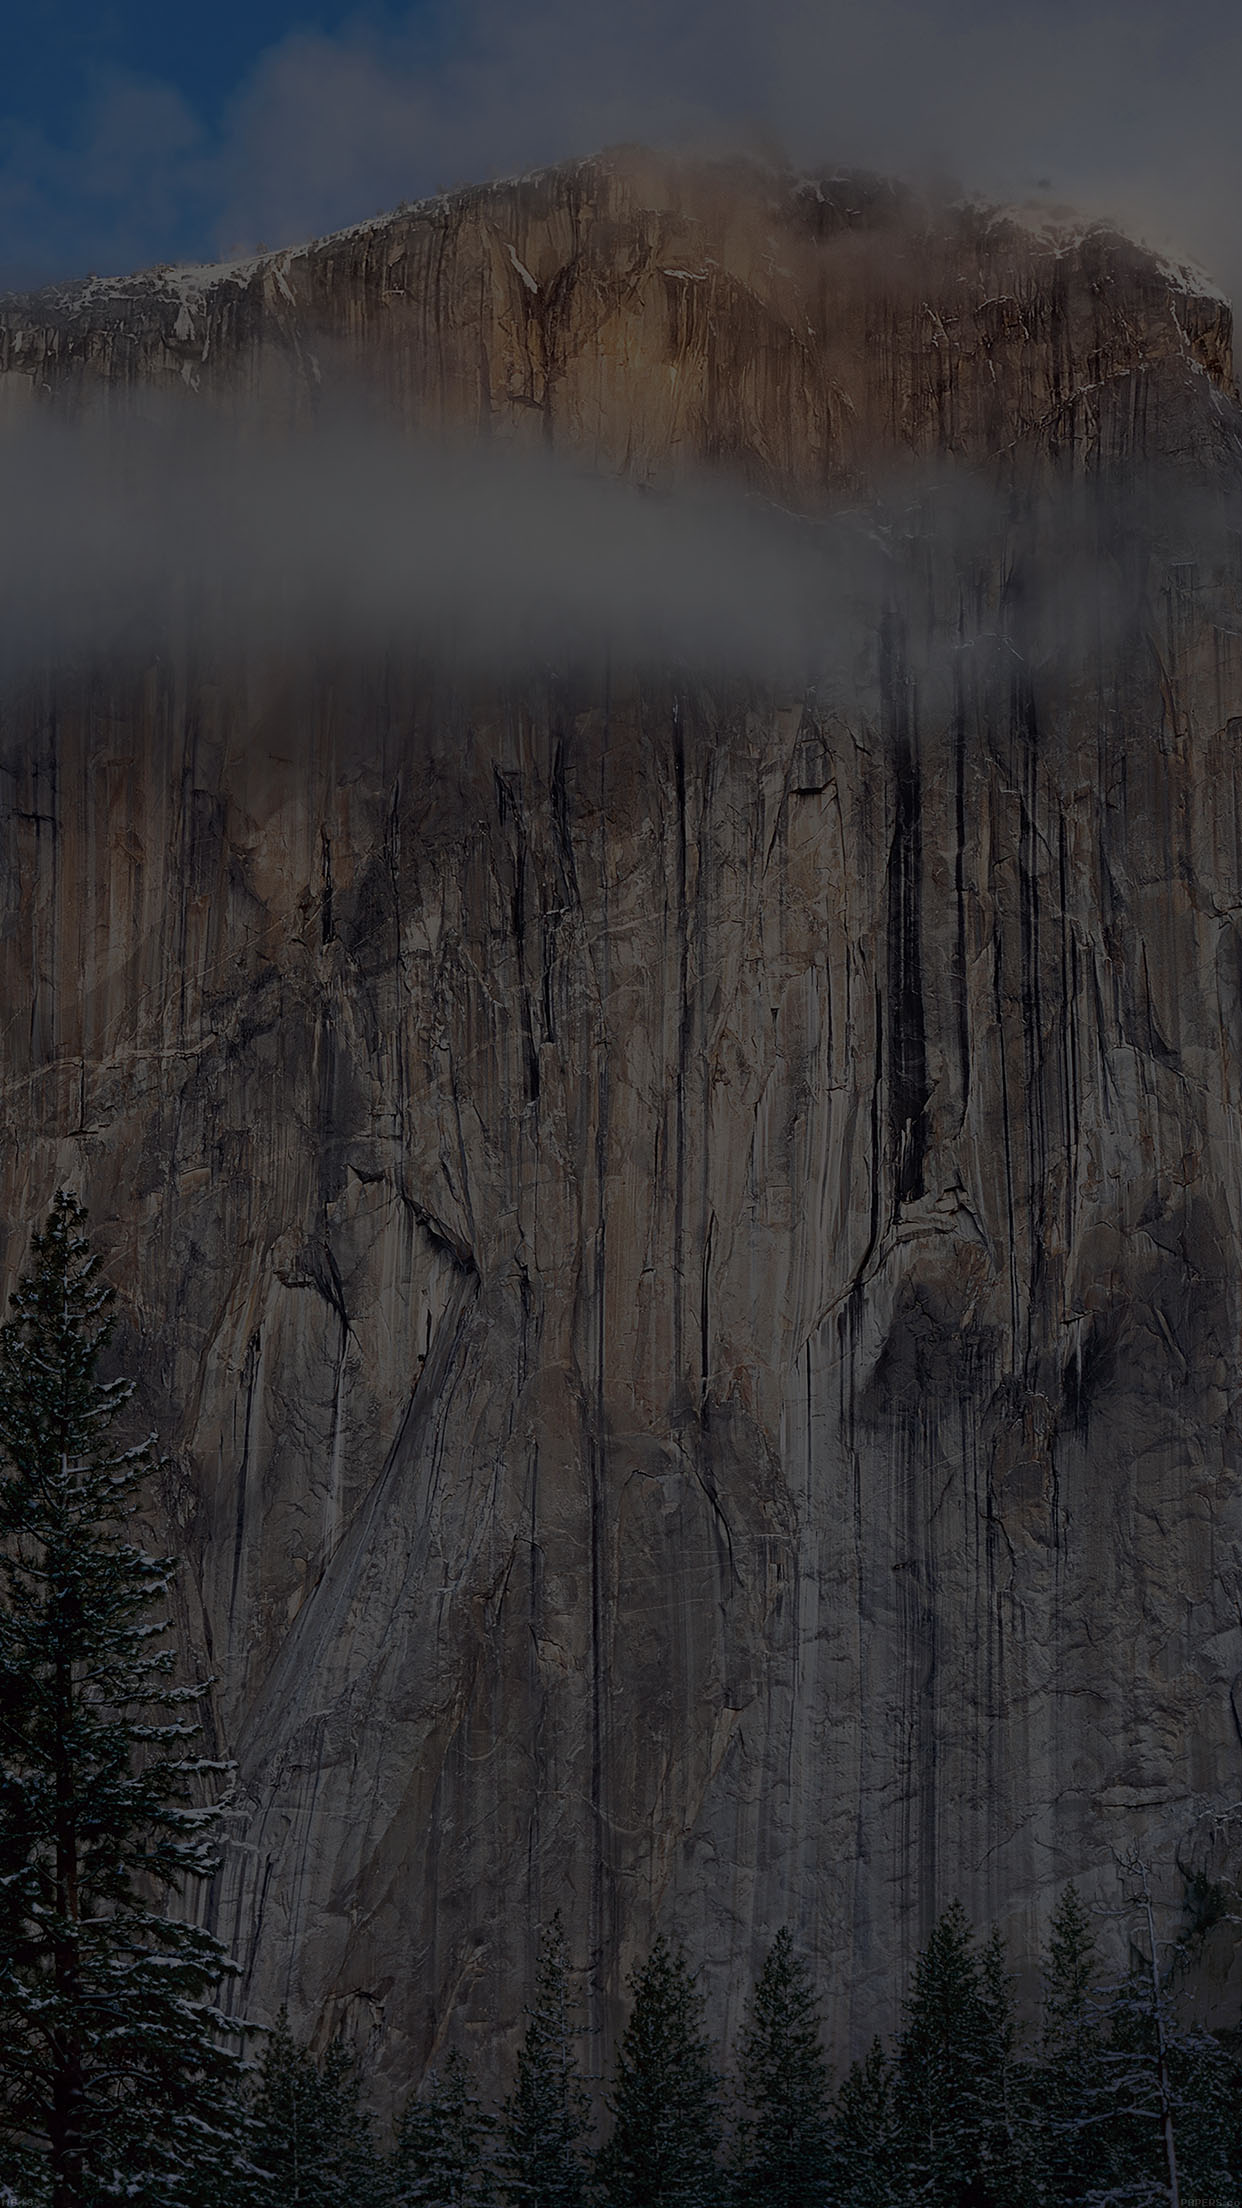 os x yosemite dark wallpaper apple android wallpaper - android hd